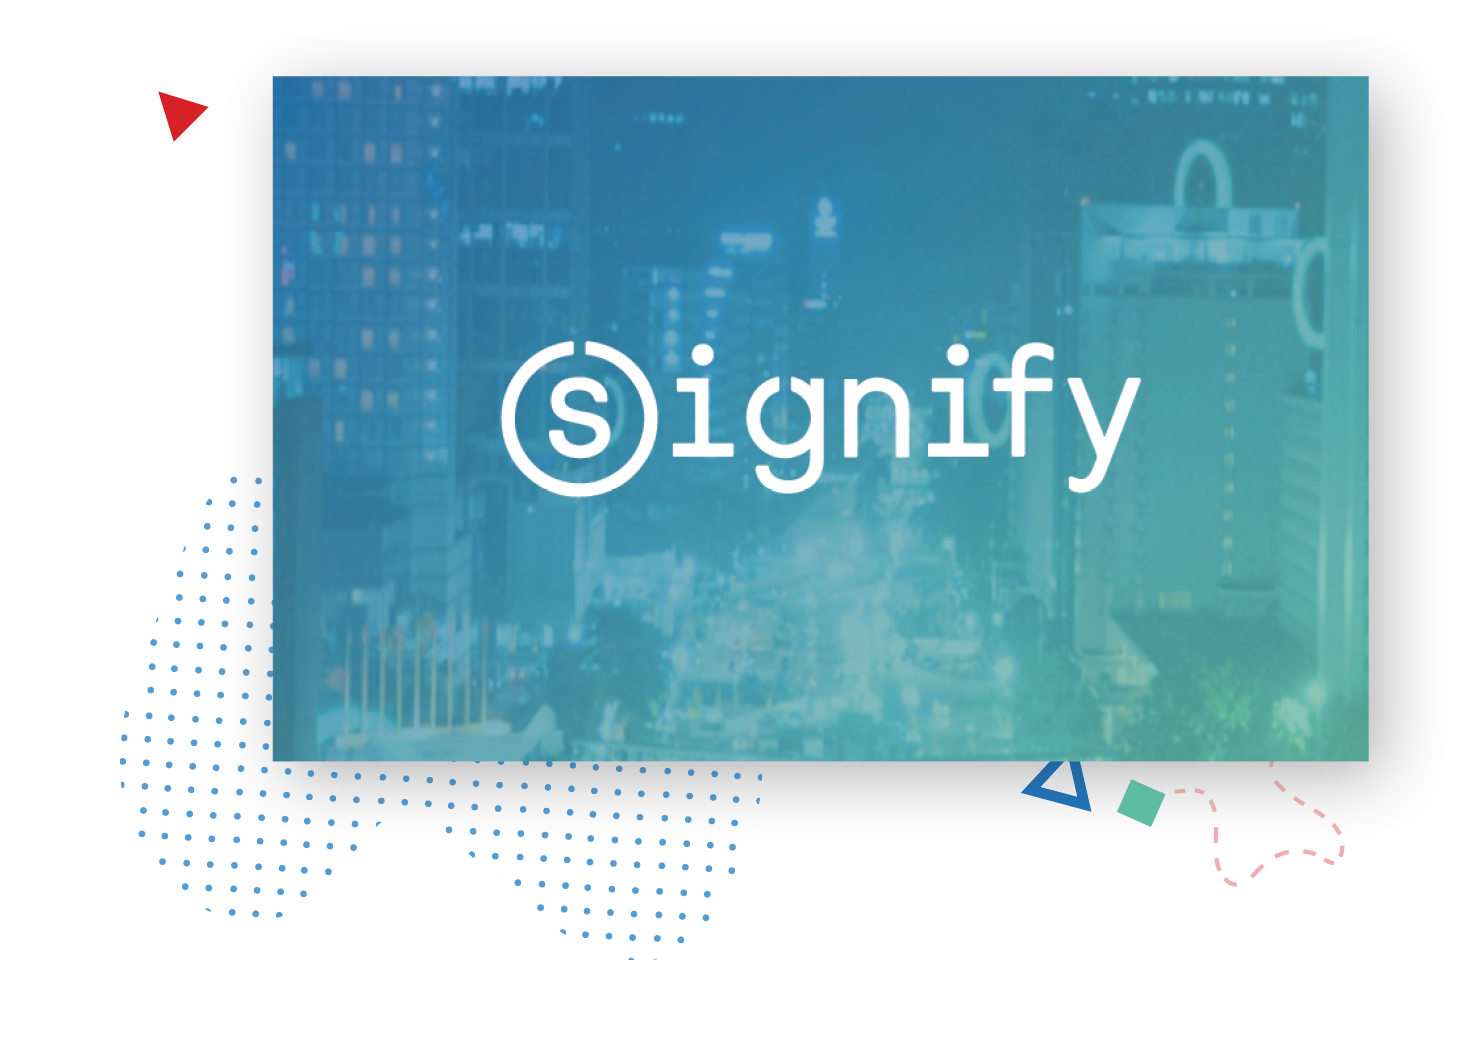 Signify Case Study Recruiting